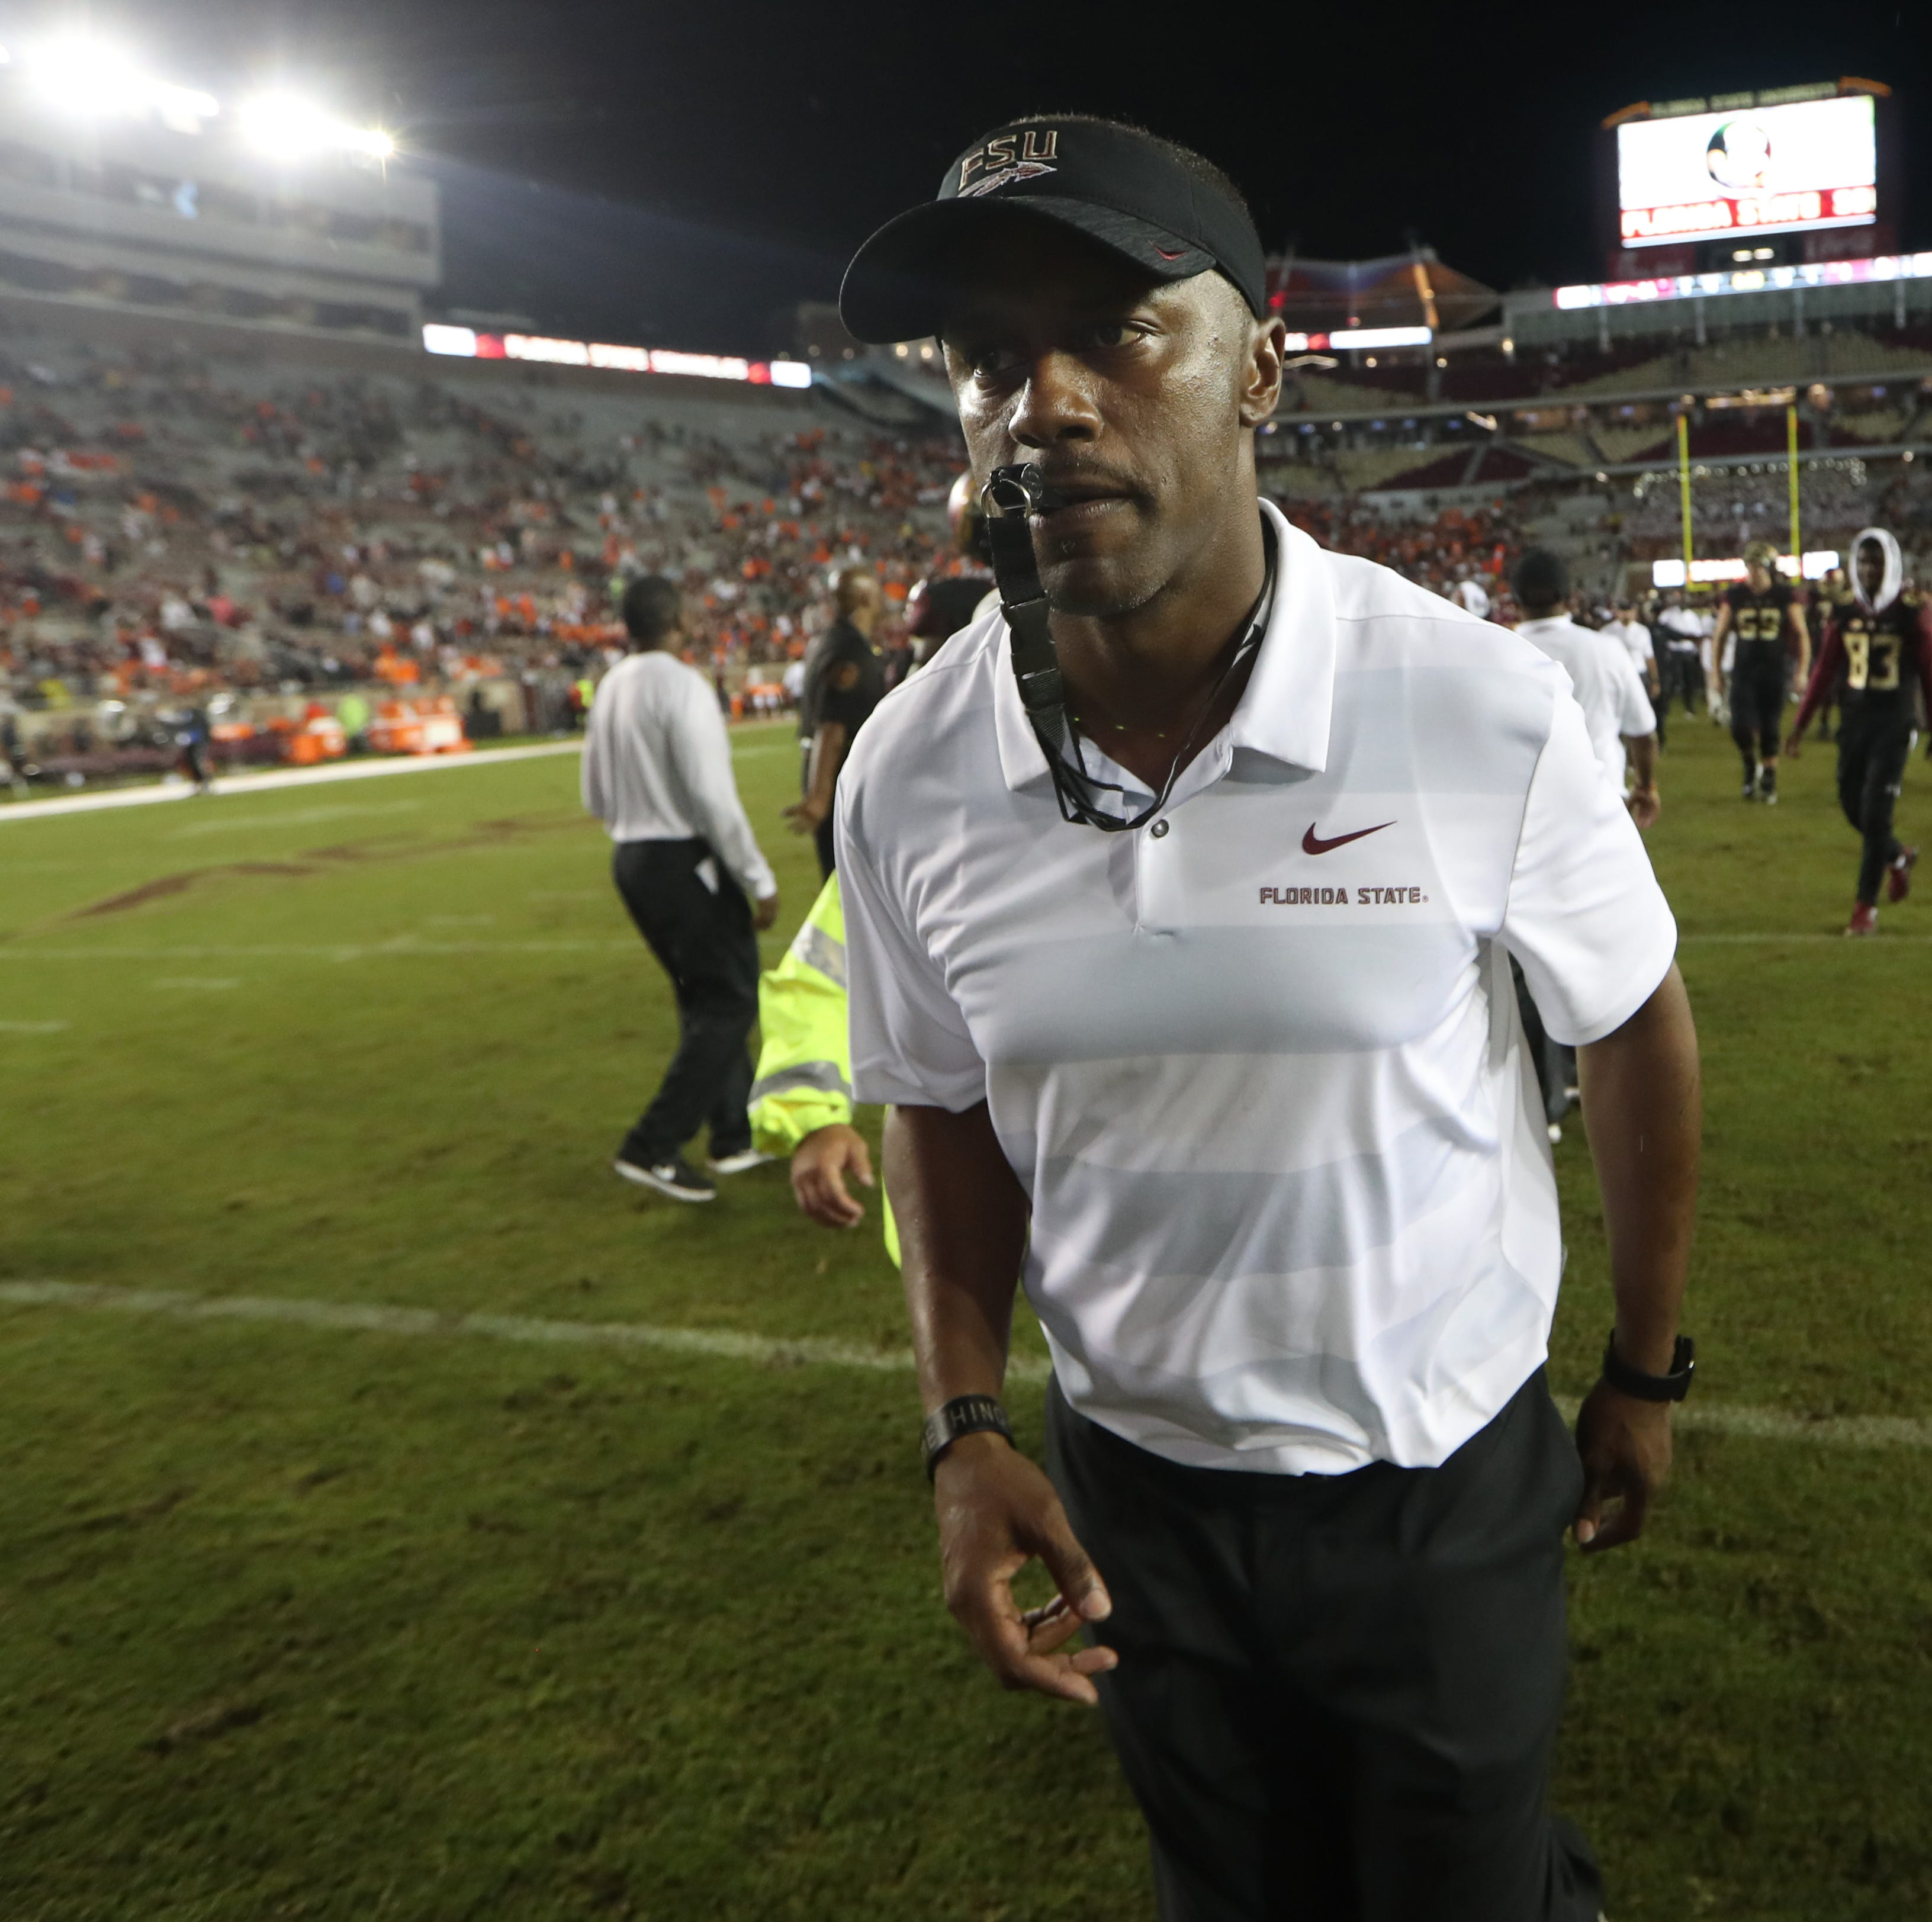 Willie Taggart says FSU fans deserve better, pledges there will be improvement